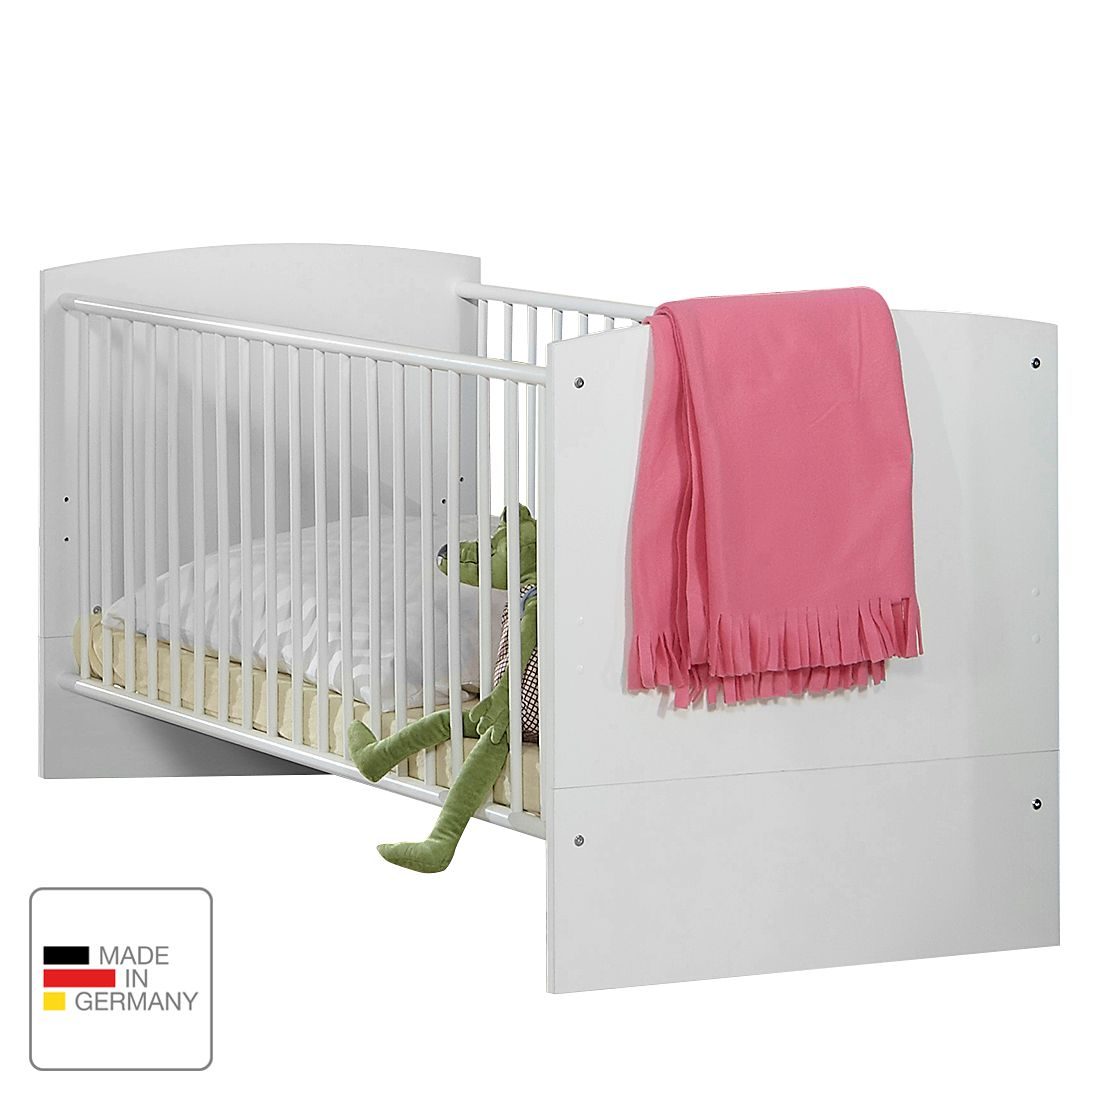 babybett gina alpinwei hochglanz brombeer mit schubkasten wimex g nstig kaufen. Black Bedroom Furniture Sets. Home Design Ideas